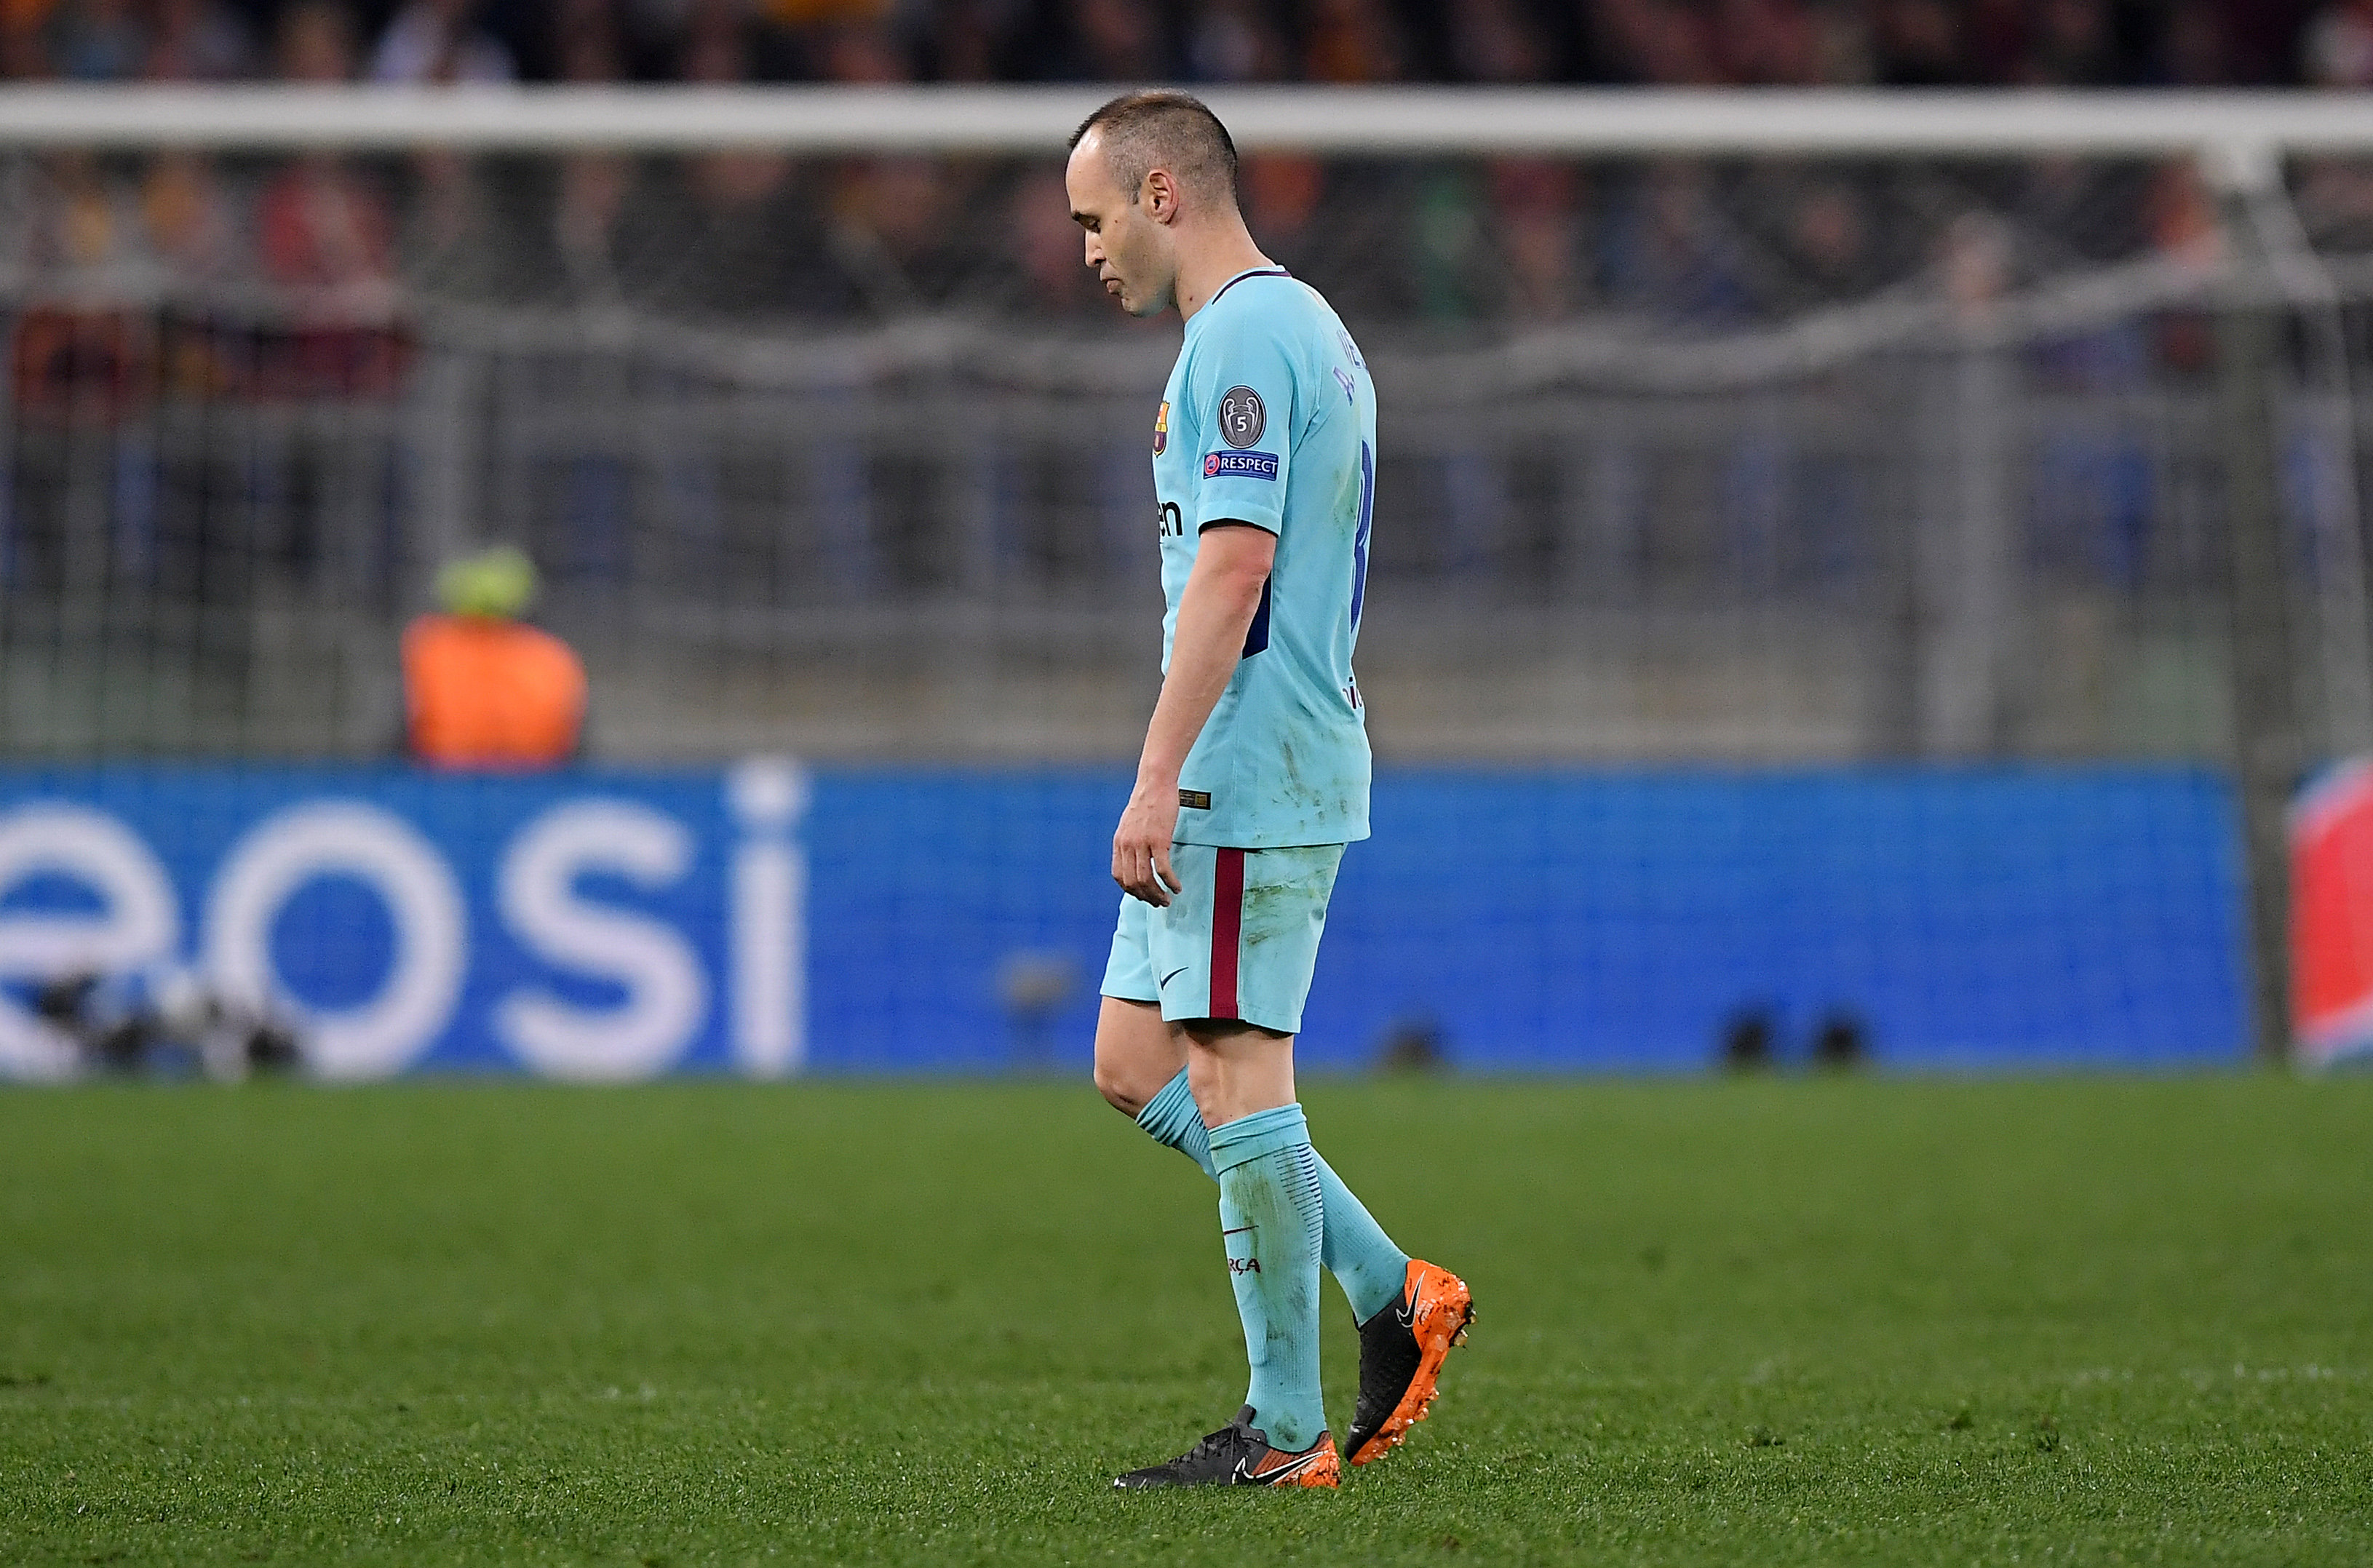 Football: No-one expected painful Barca defeat, says Iniesta